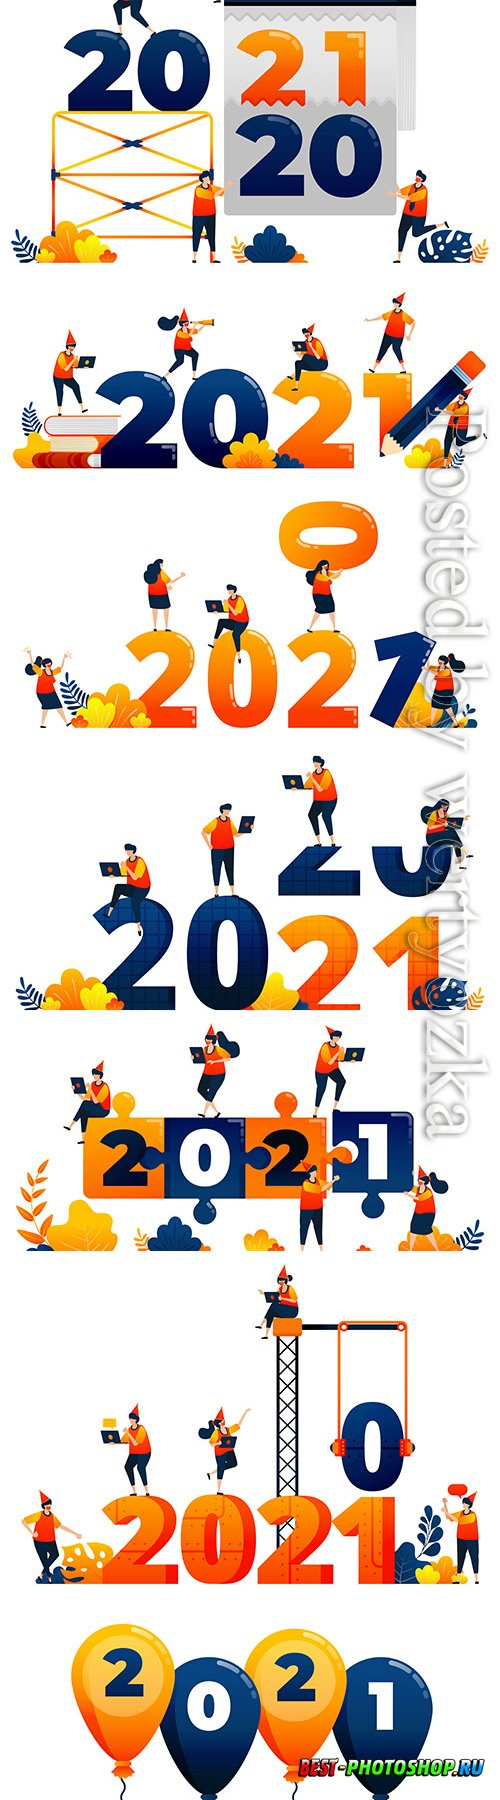 Countdown theme of teamwork in the following year concept vector